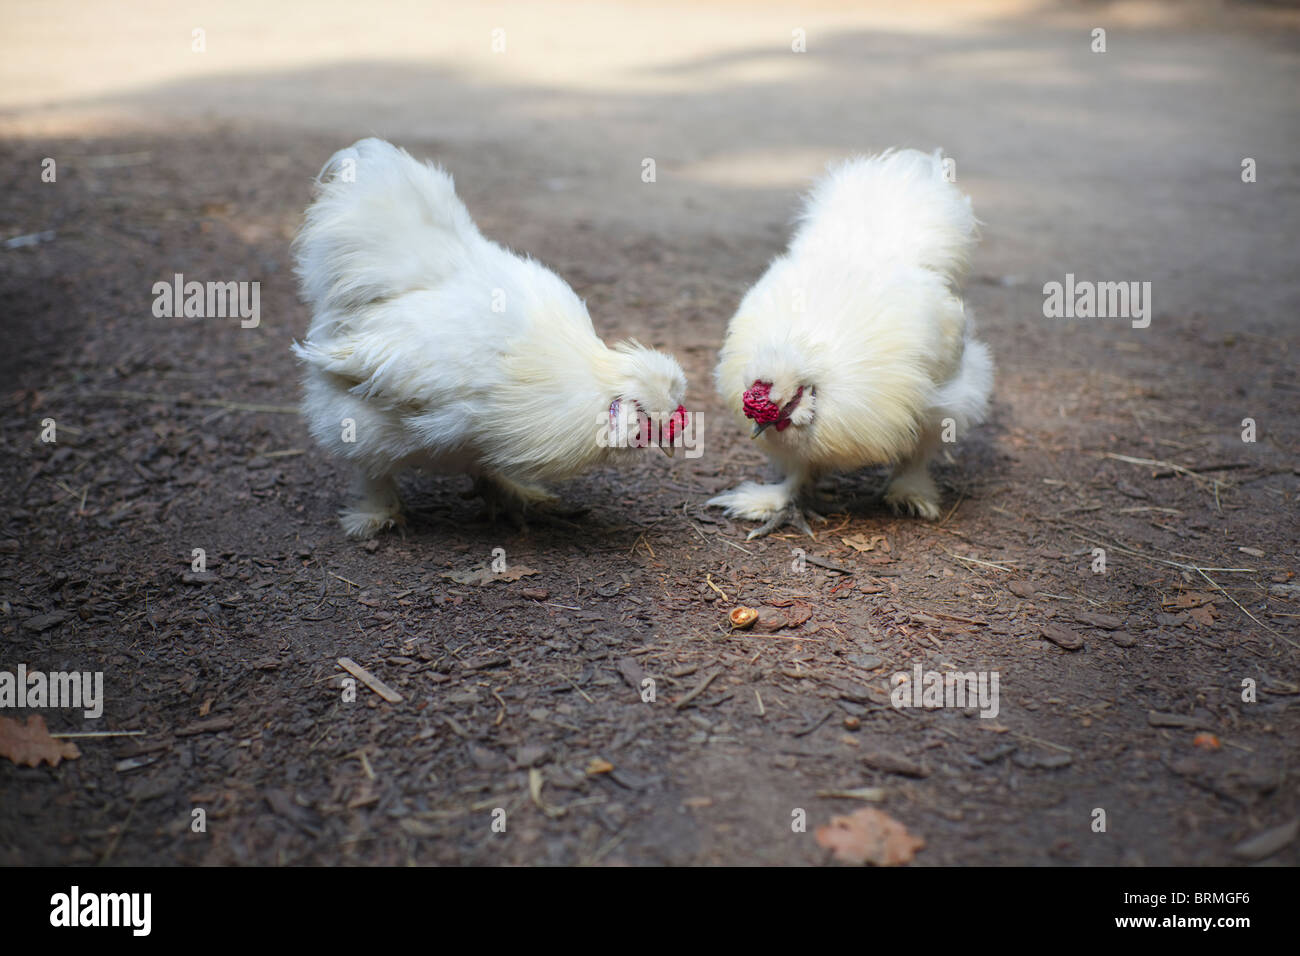 Two hens - Stock Image